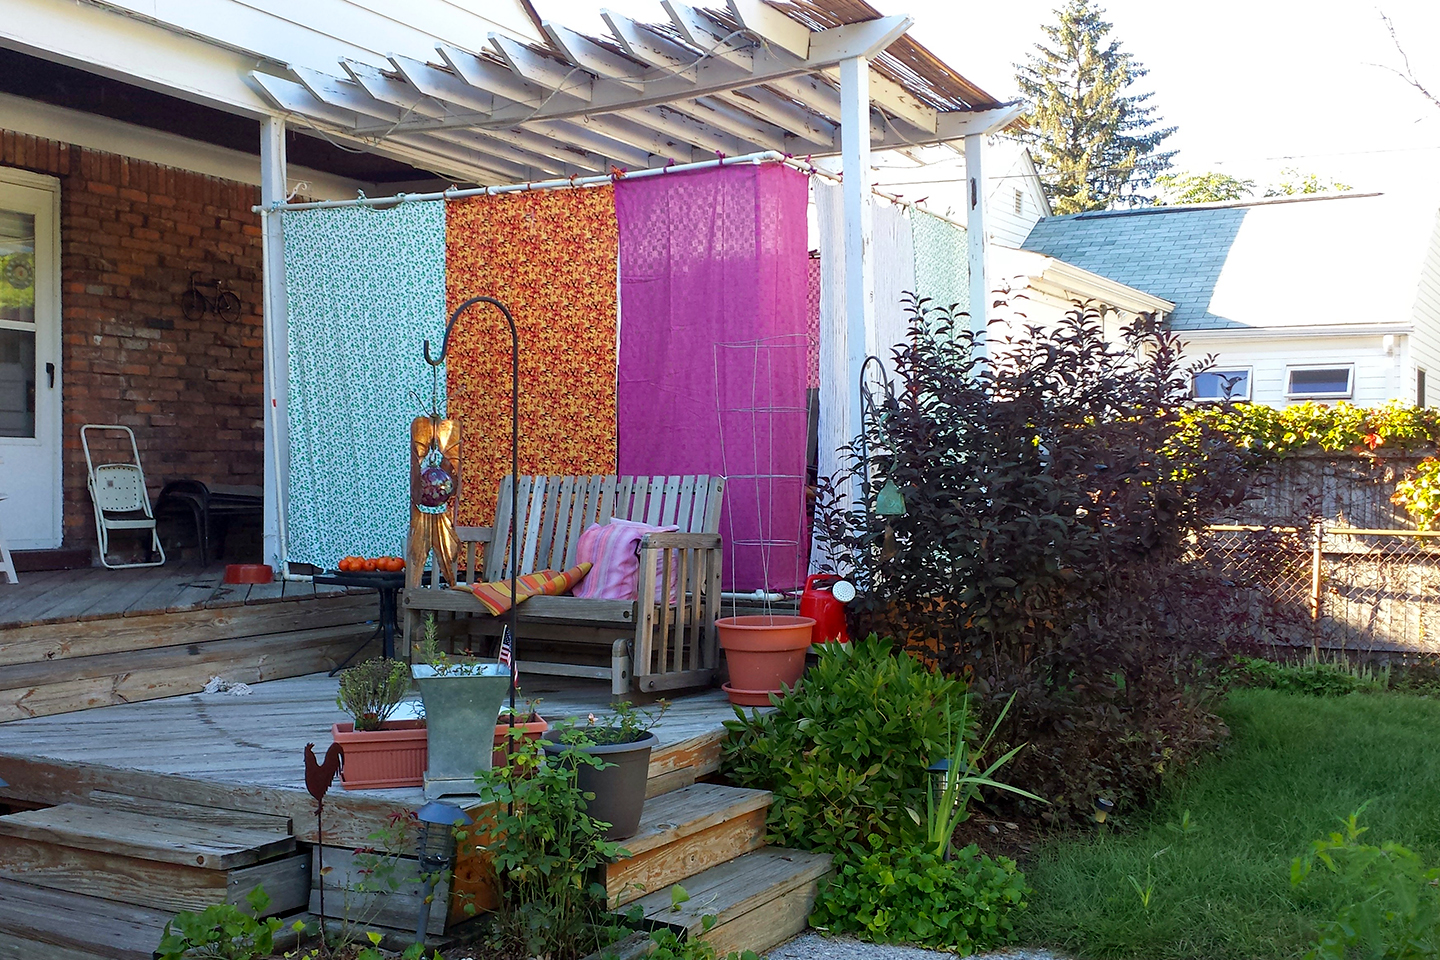 The-Kannon-Family-of-Ferndale.-Sukkah-is-made-of-PVC-and-tabbed-fabric-panels_2